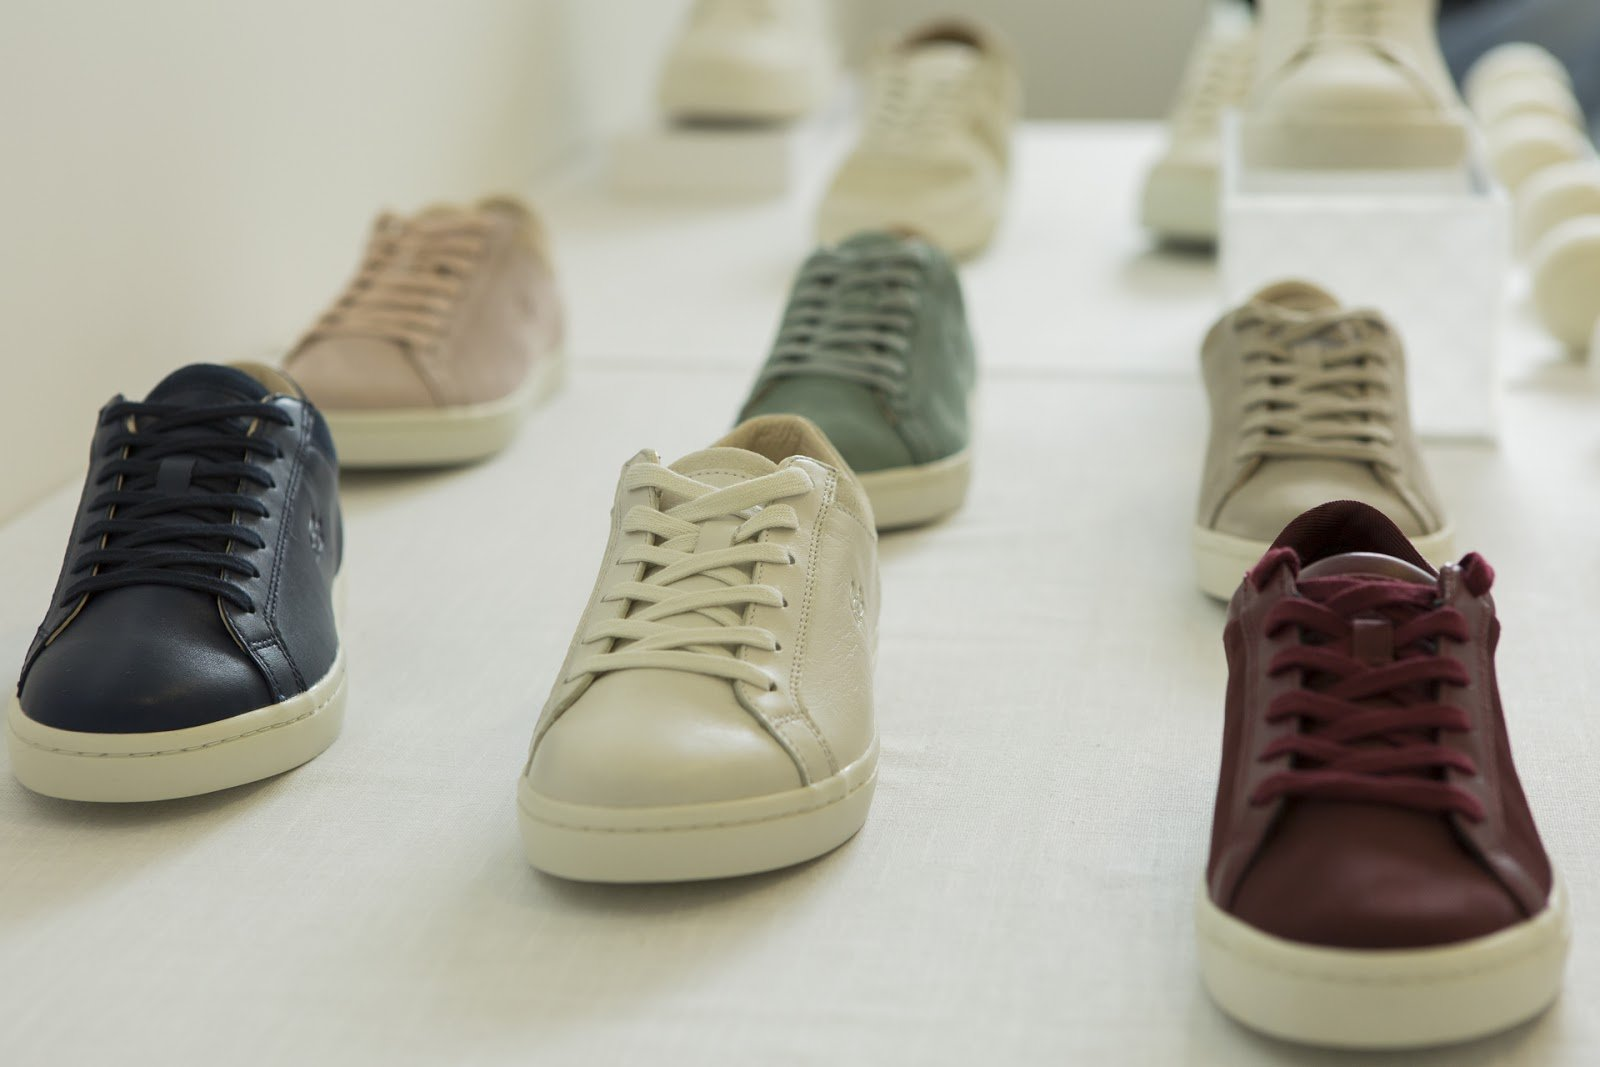 Lacoste Chaussures Collection Automne Hiver 2015